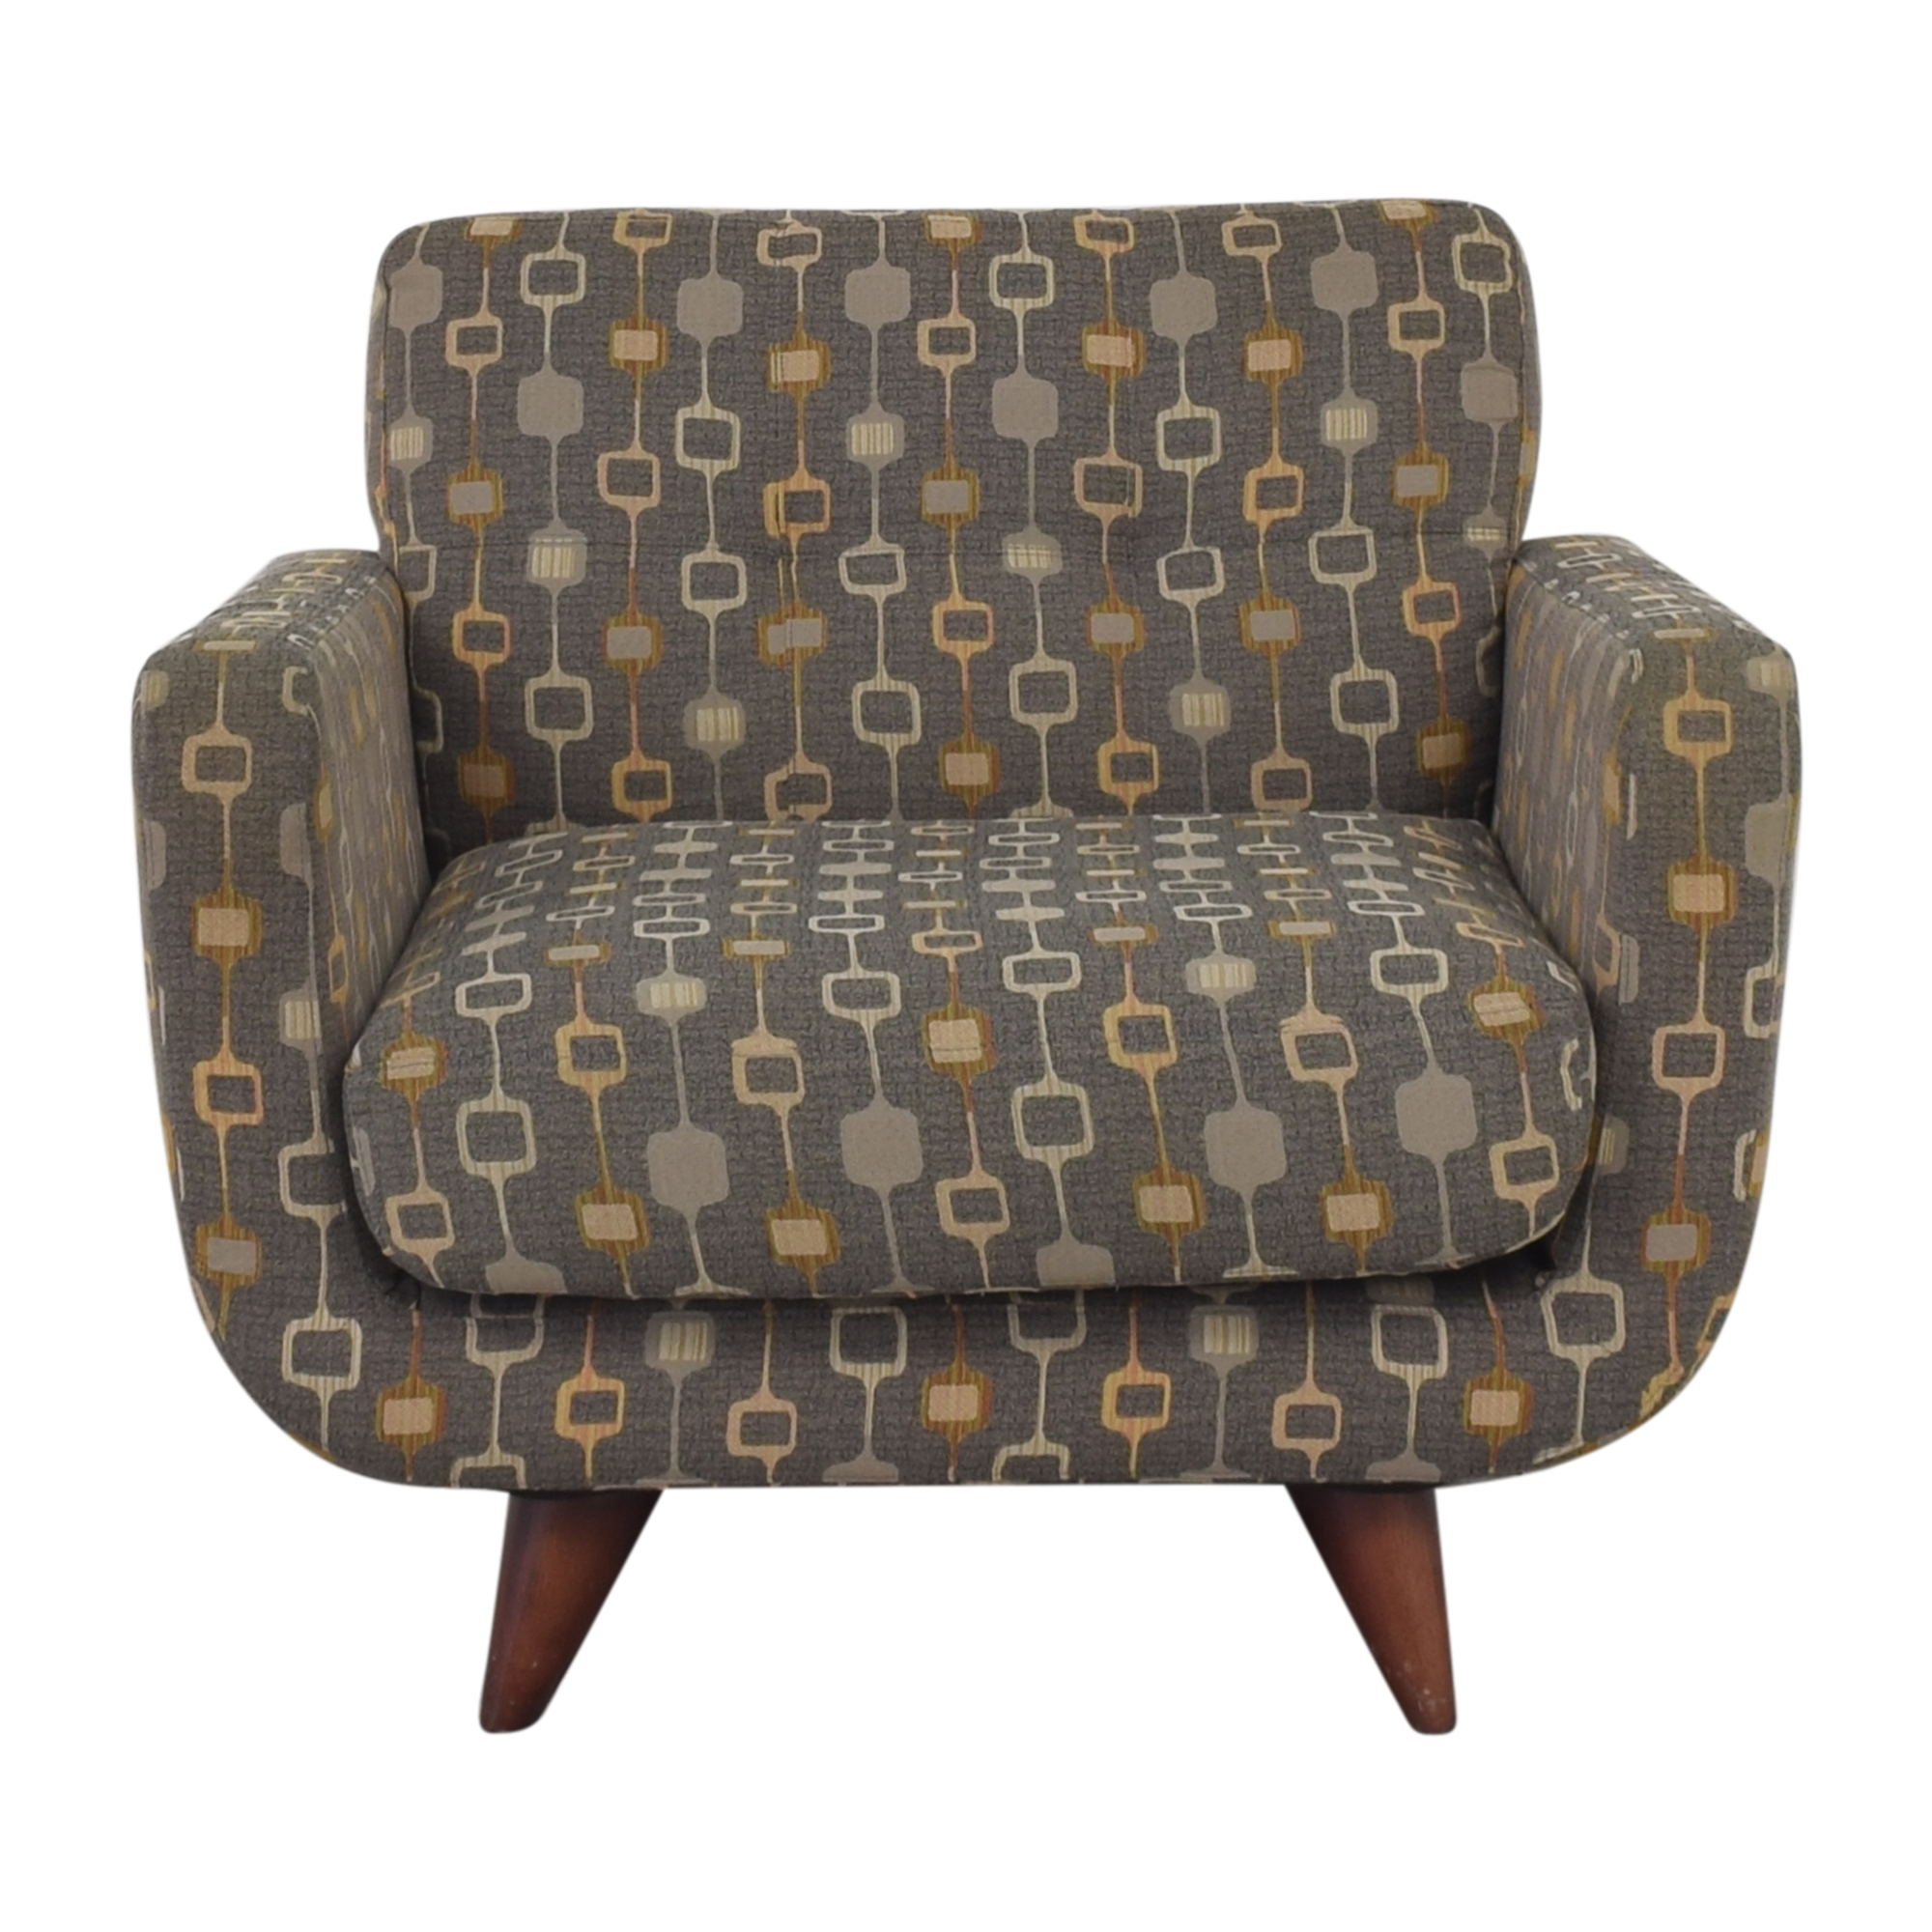 Room & Board Room & Board Anson Accent Chair dimensions